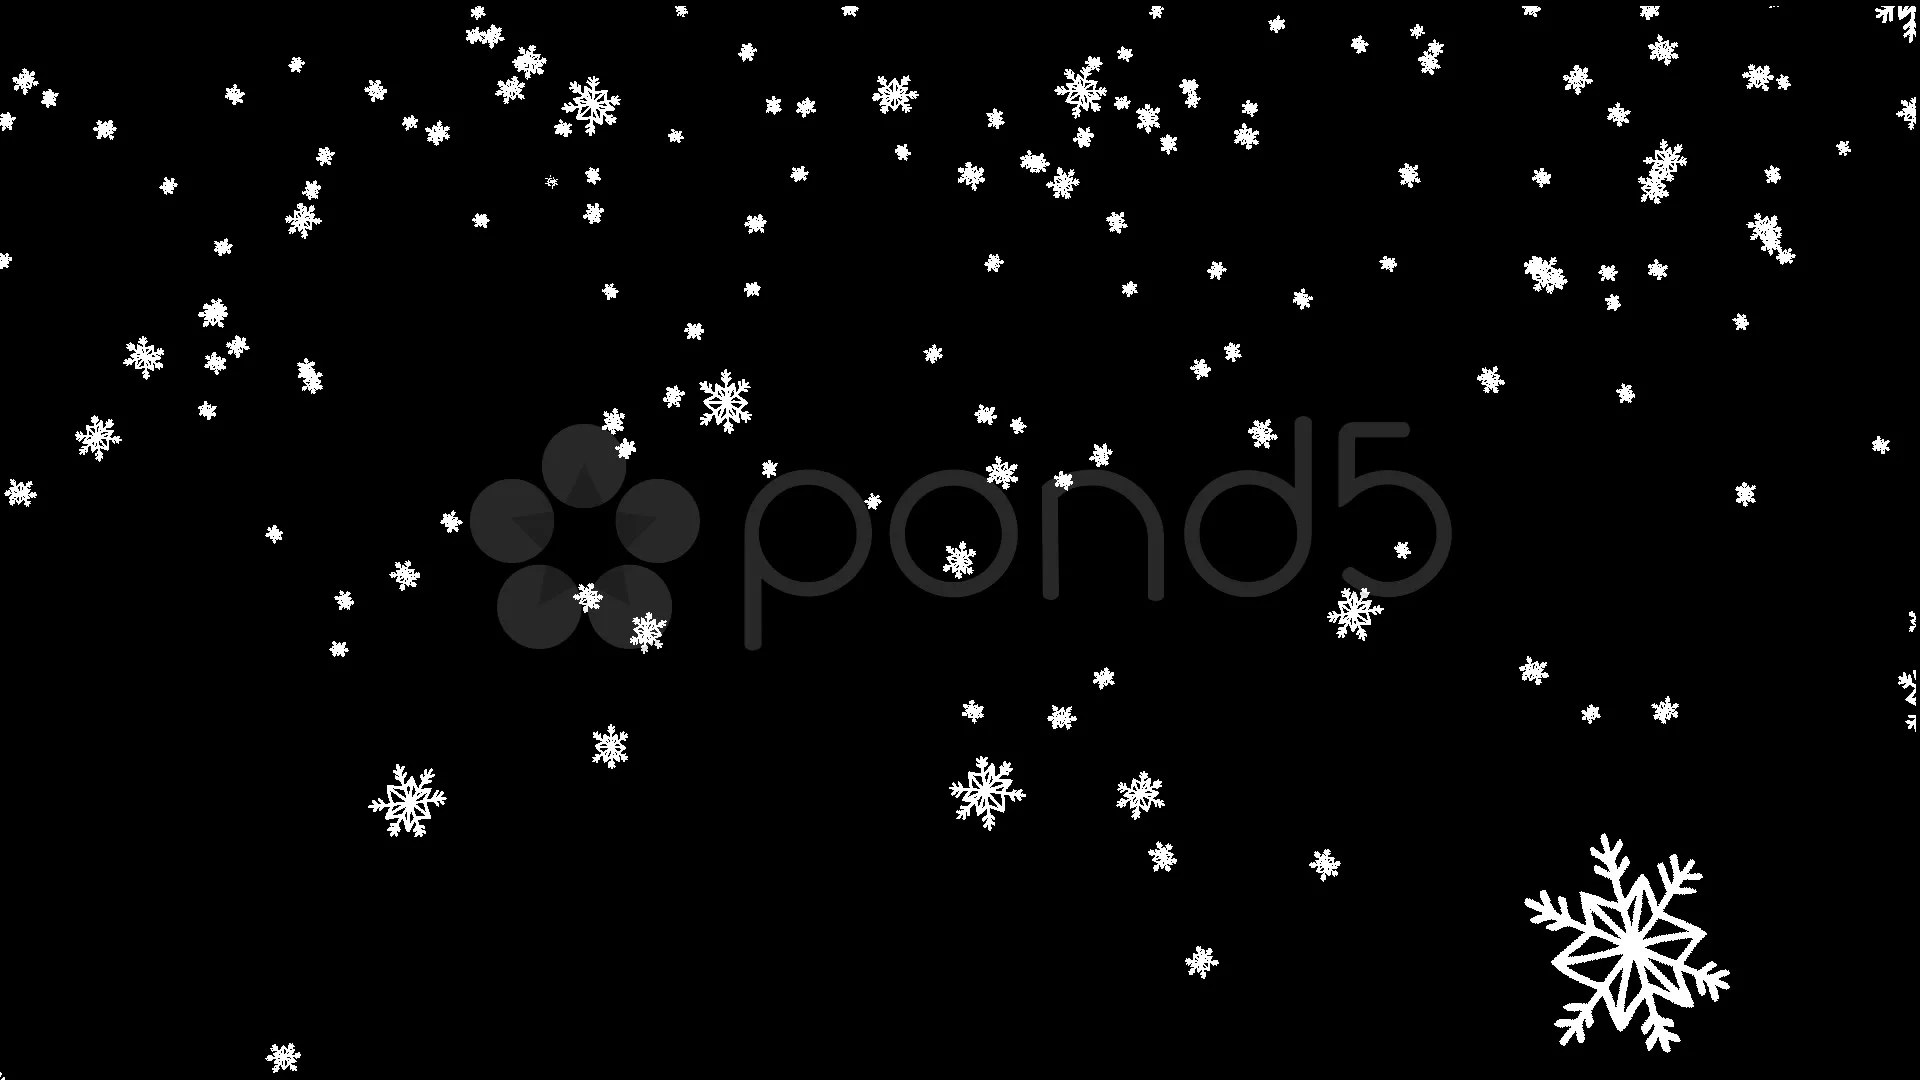 Christmas Falling Snow Wallpaper Note 3 Cartoon Snowflakes Falling Big Stock Footage 12555468